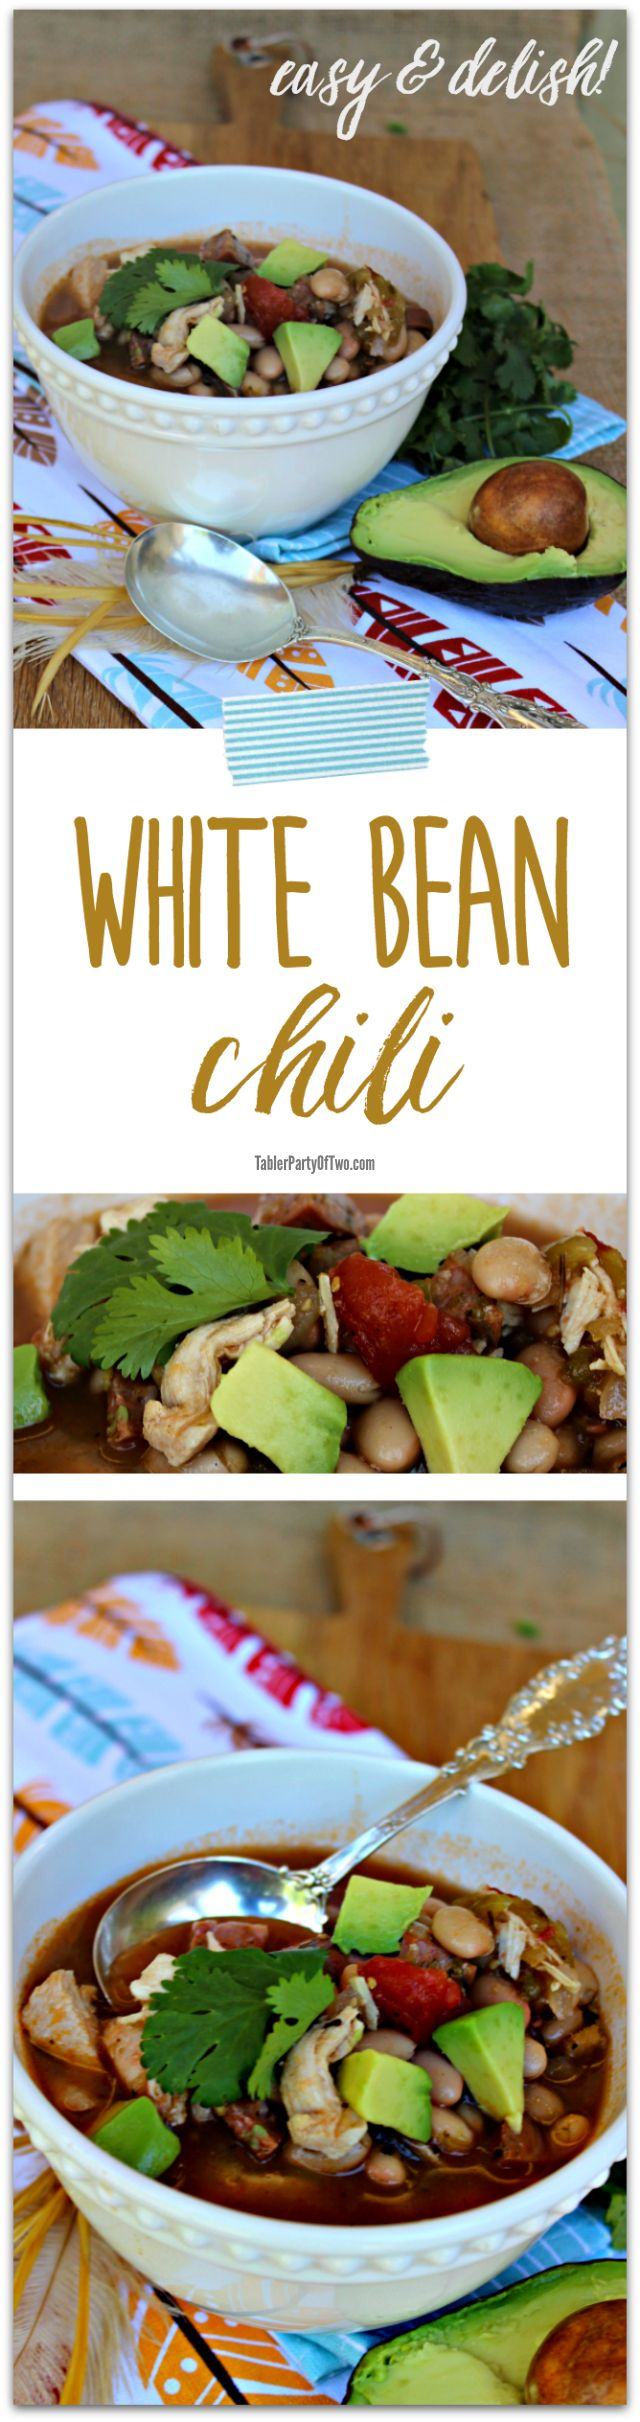 Easy and Delish White Bean Chili. Full of flavor and perfect for cold winter nights! TablerPartyofTwo.com